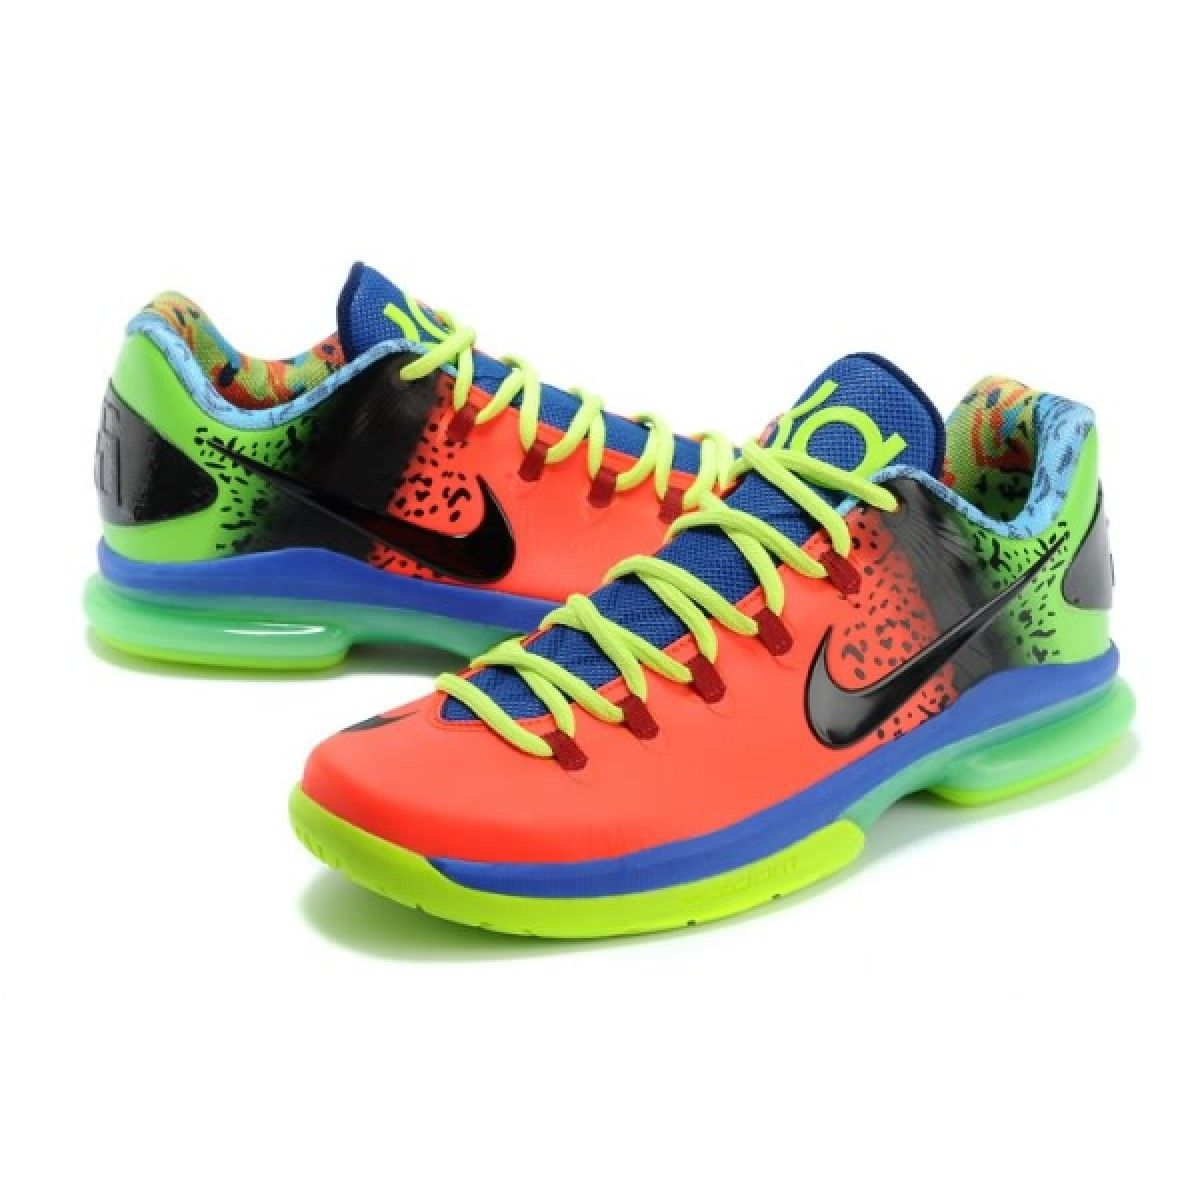 1000+ images about kevin durant on Pinterest | Kevin durant shoes, Basketball shoes and Kevin durant